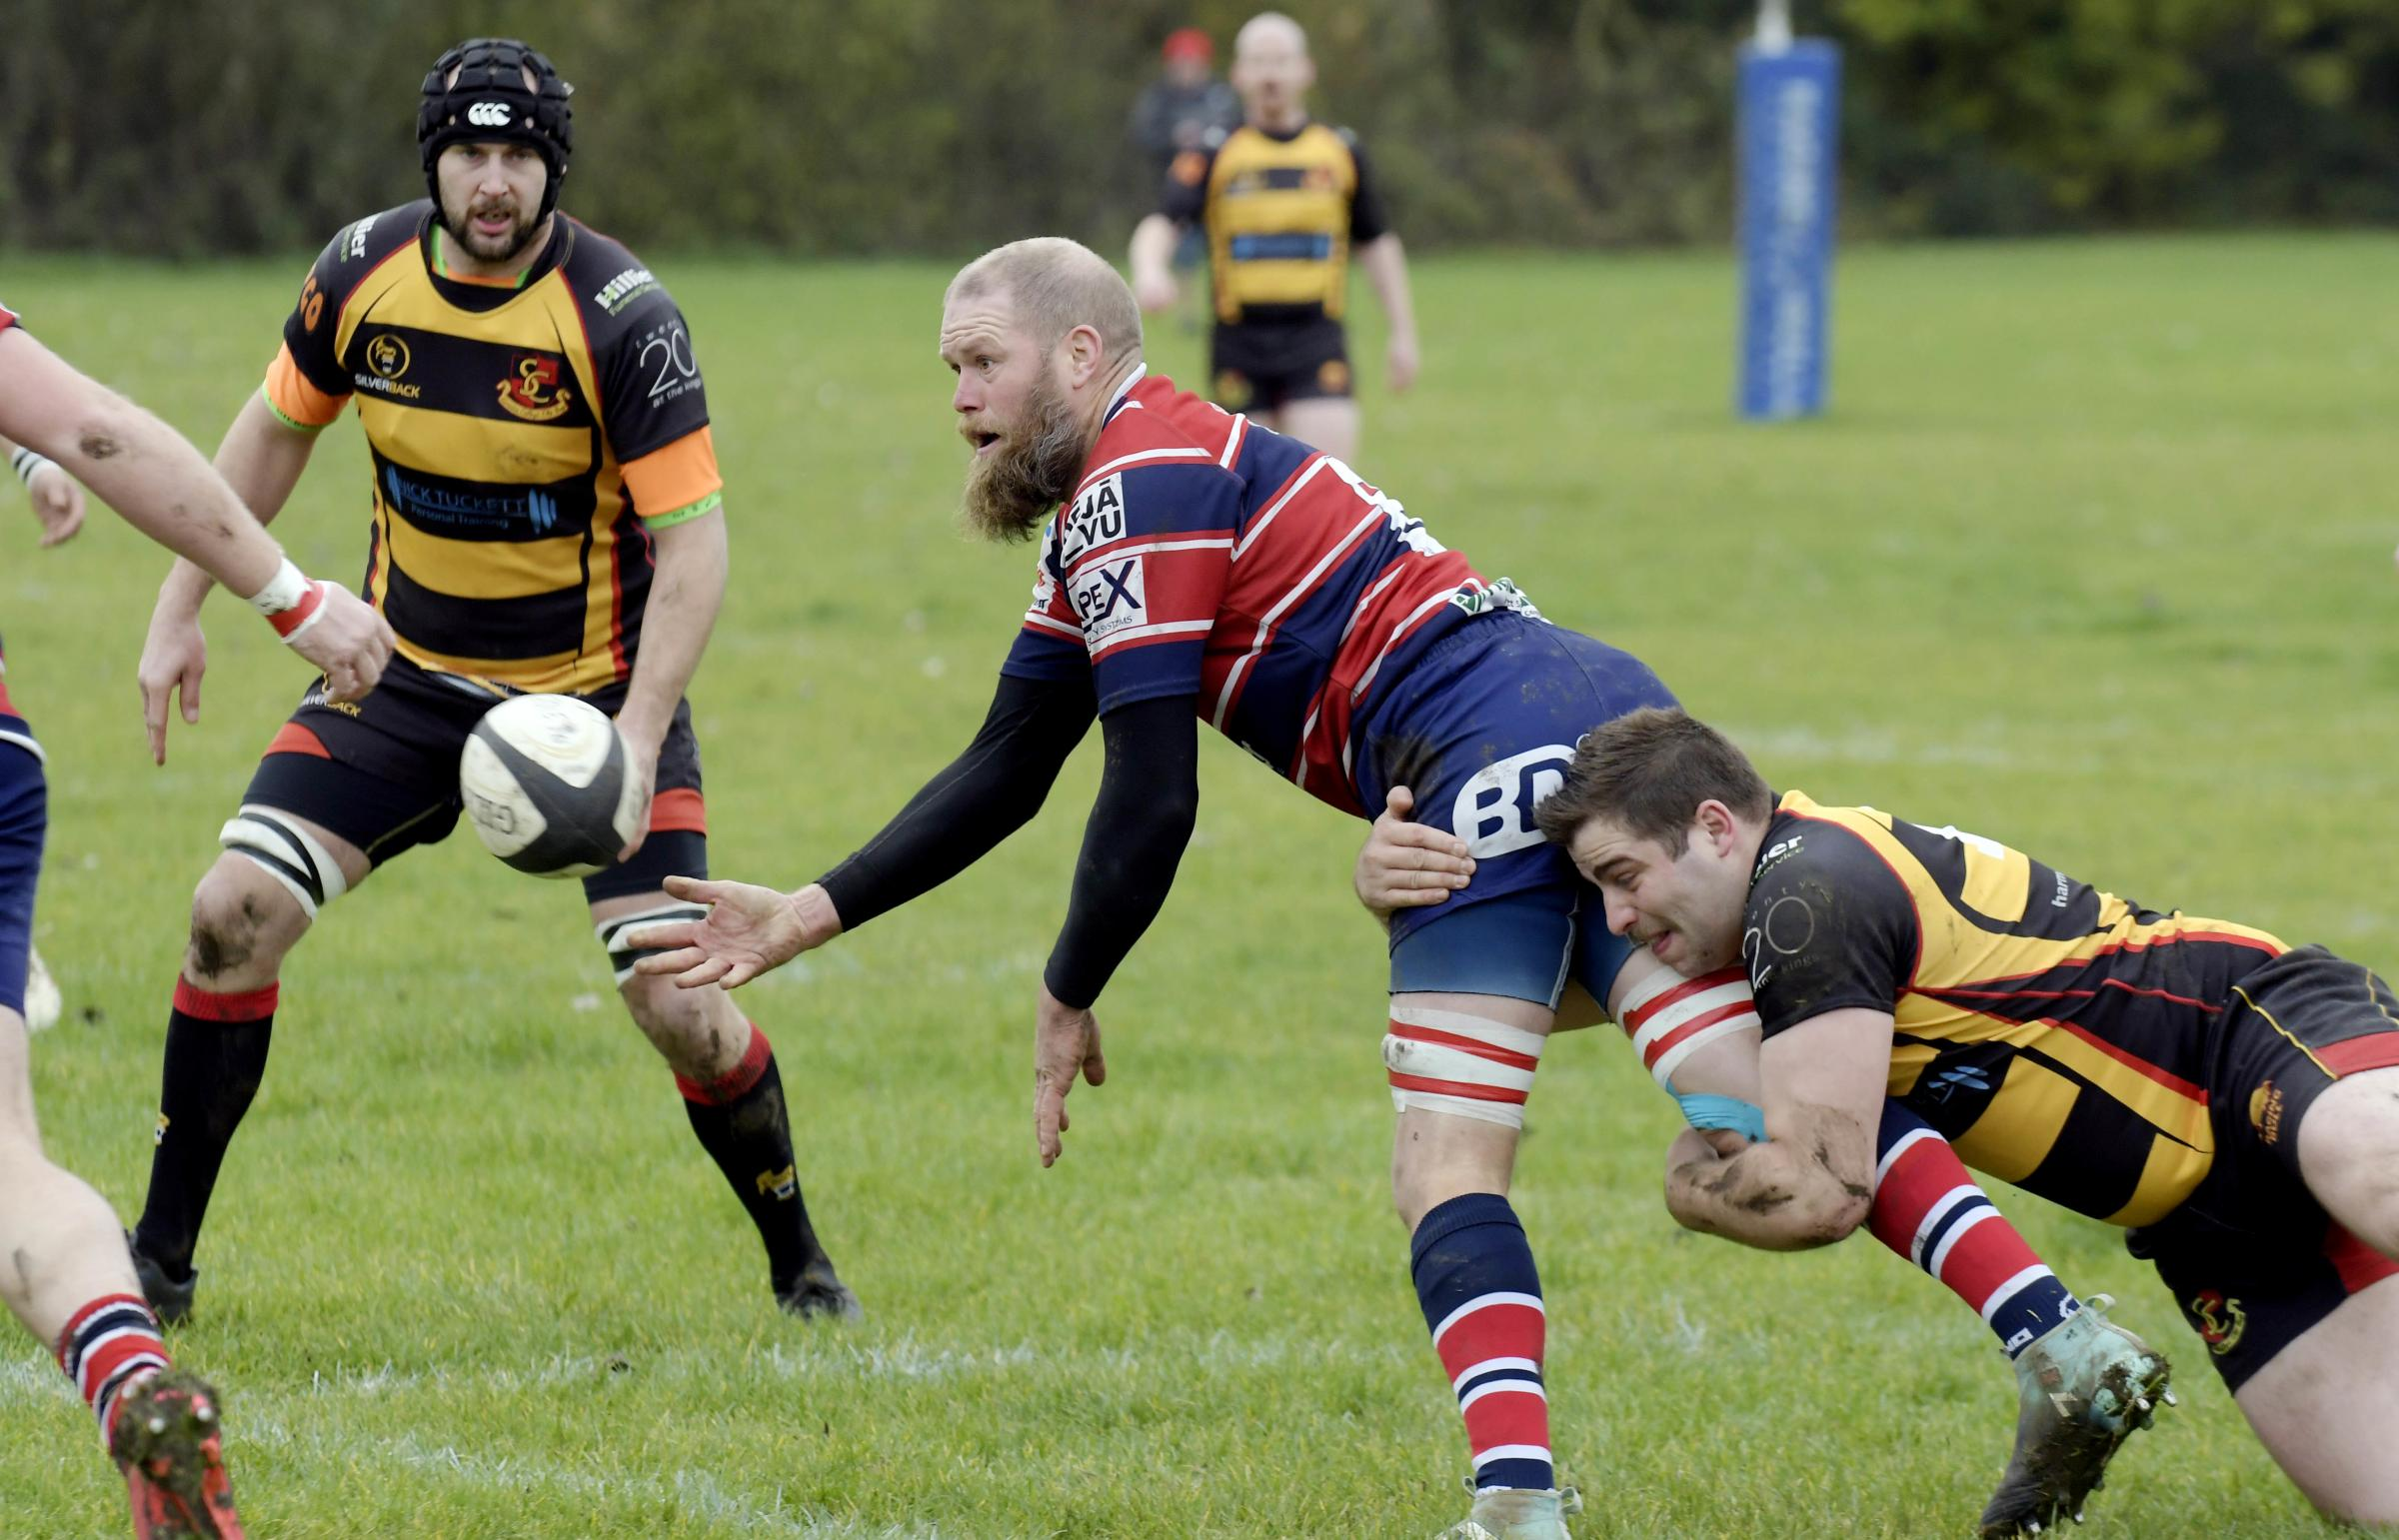 RUGBY UNION: Grove return to winning ways + round-up - Oxford Mail